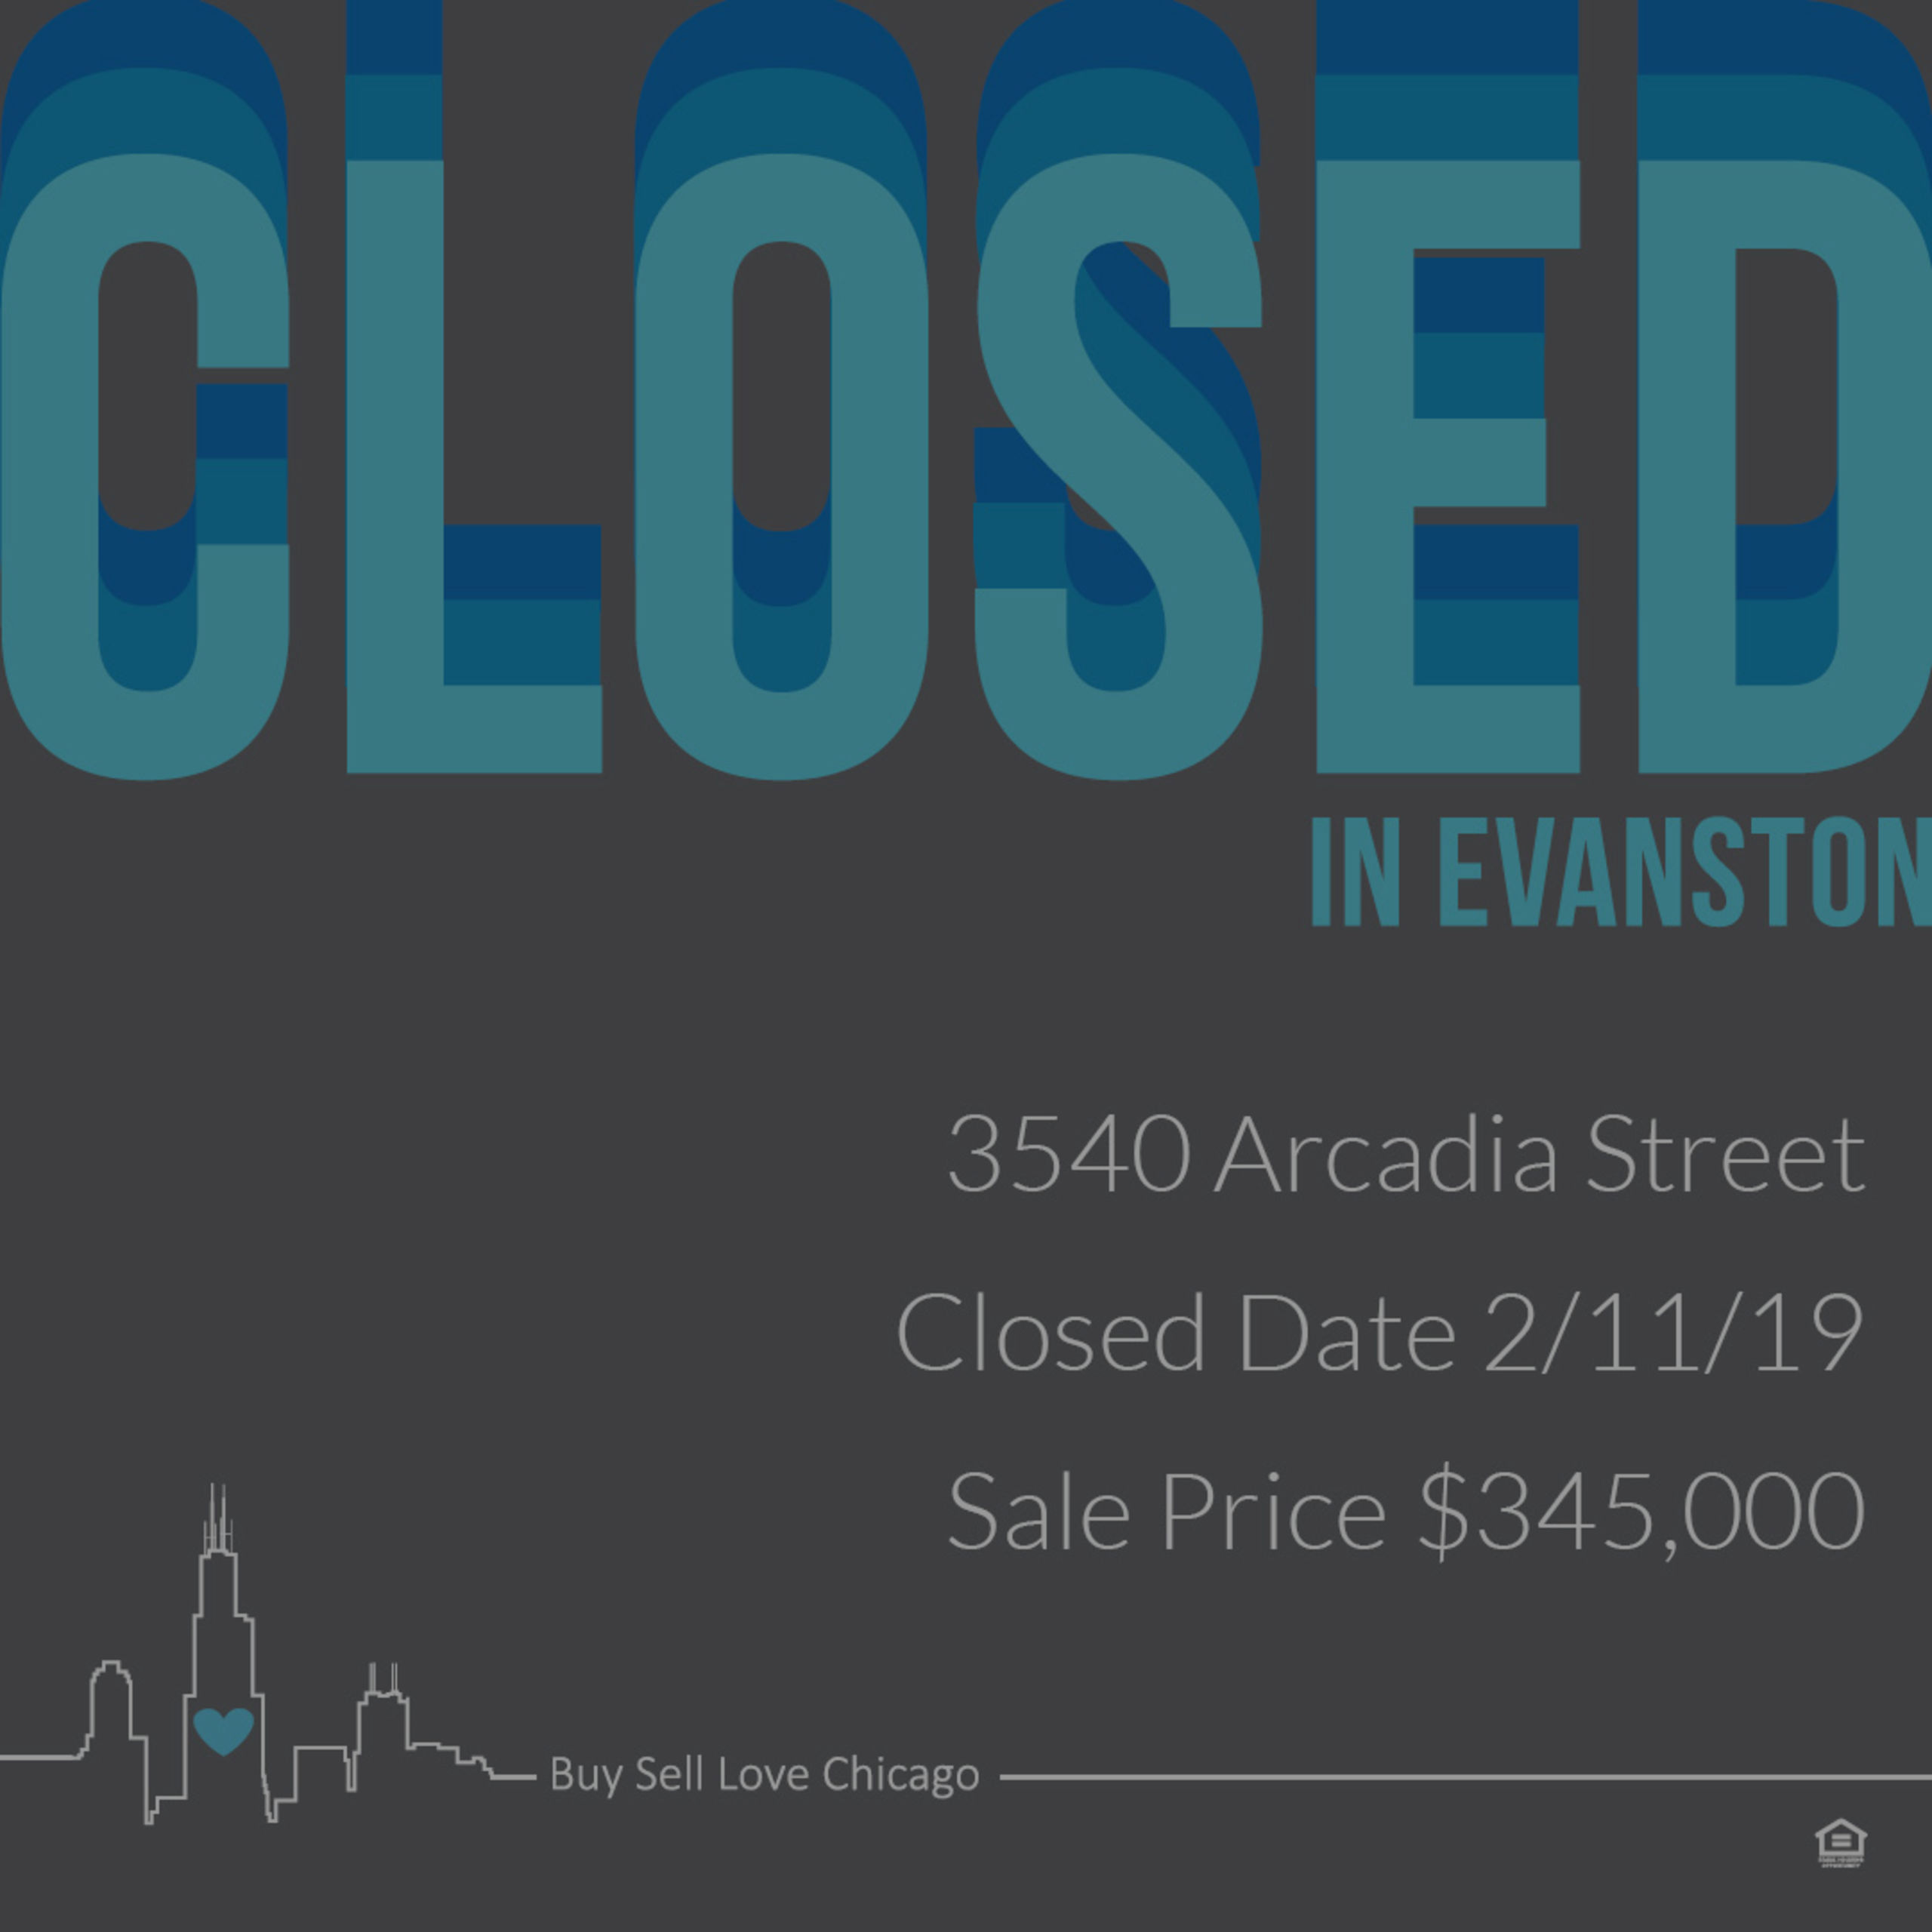 JUST SOLD: 3540 ARCADIA ST, EVANSTON, IL 60203